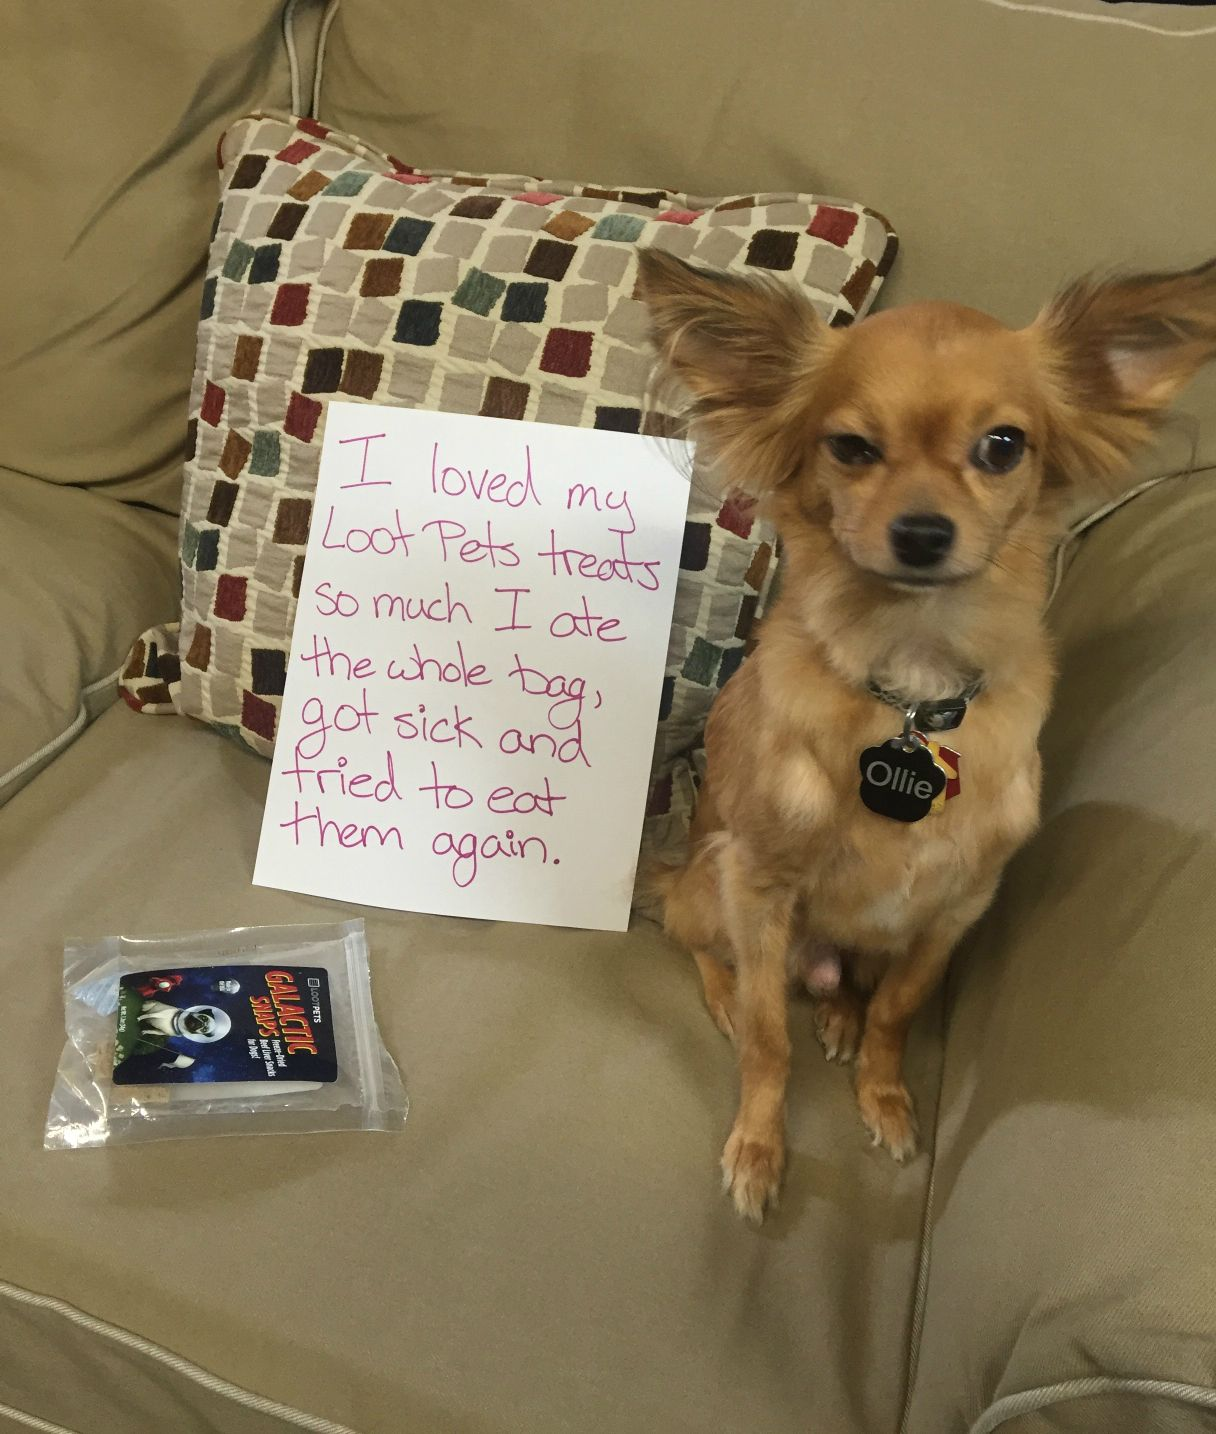 Loosin Your Loot Dog Shaming Loot Dog Pictures